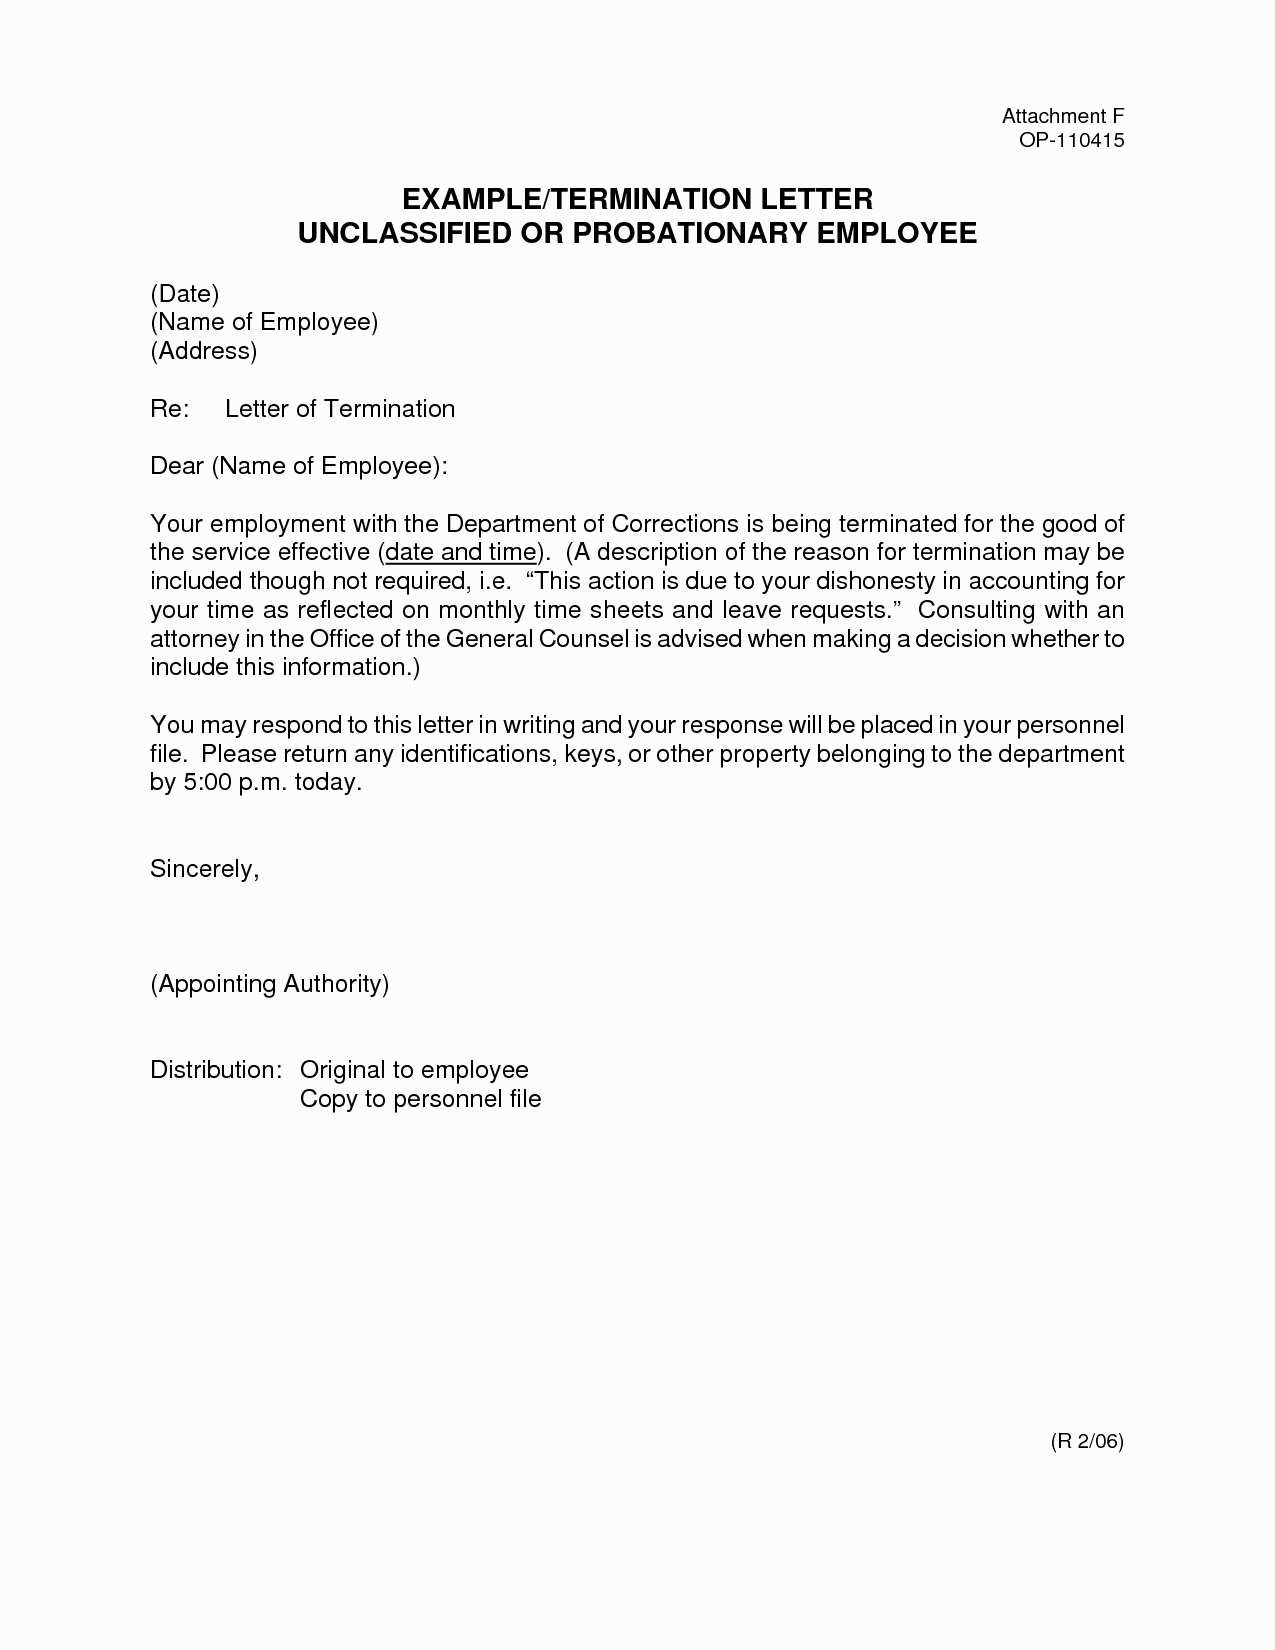 sample employee termination letter template Collection-Sample Certificate Employment and pensation Fresh Employment Termination Letter Template Uk Fresh Best Letter format 13-h